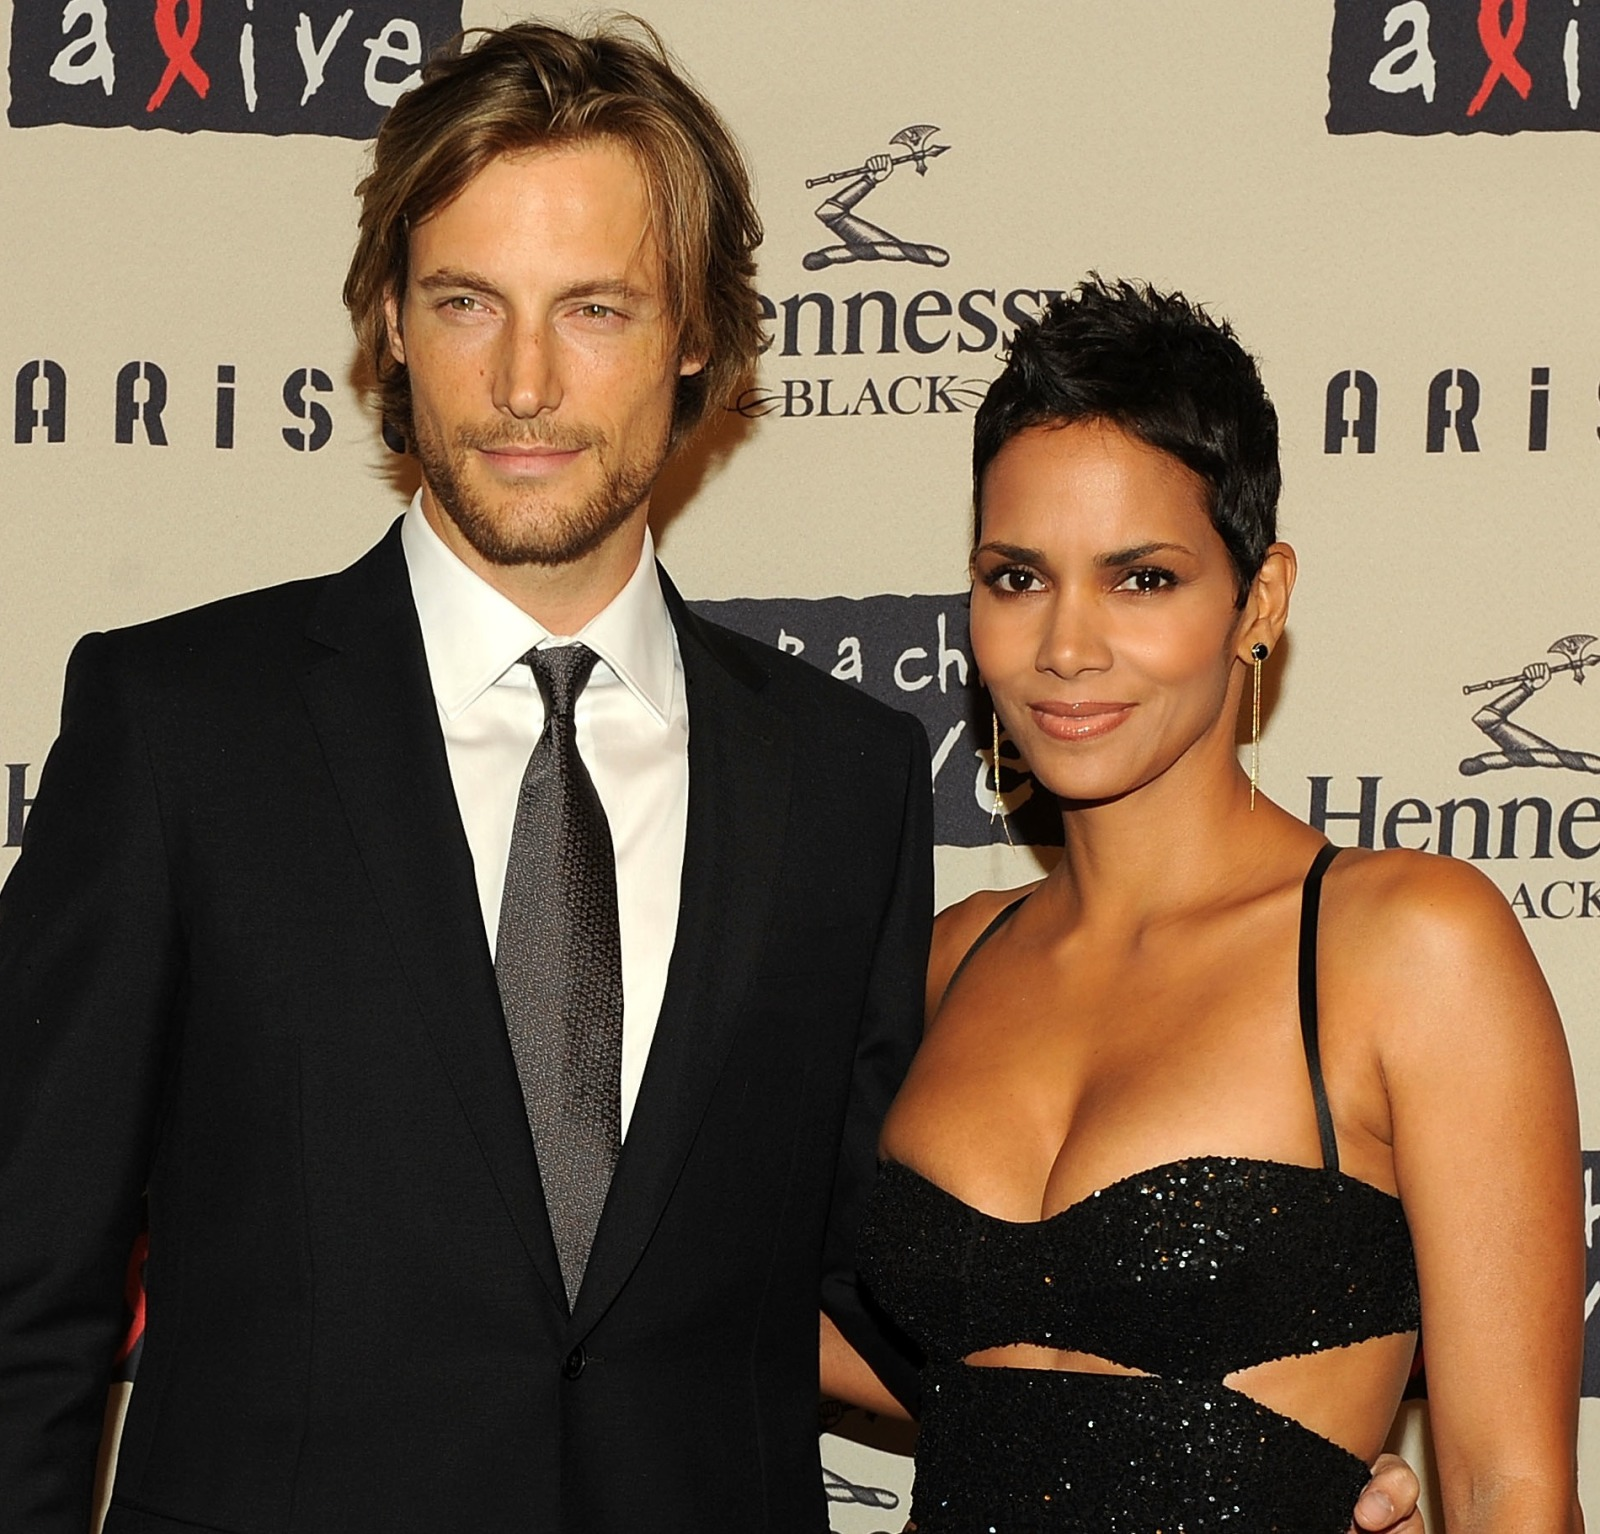 halle%2Bgabriel Actress Halle Berry has fueled rumors she's dating her Dark Tideco star ...